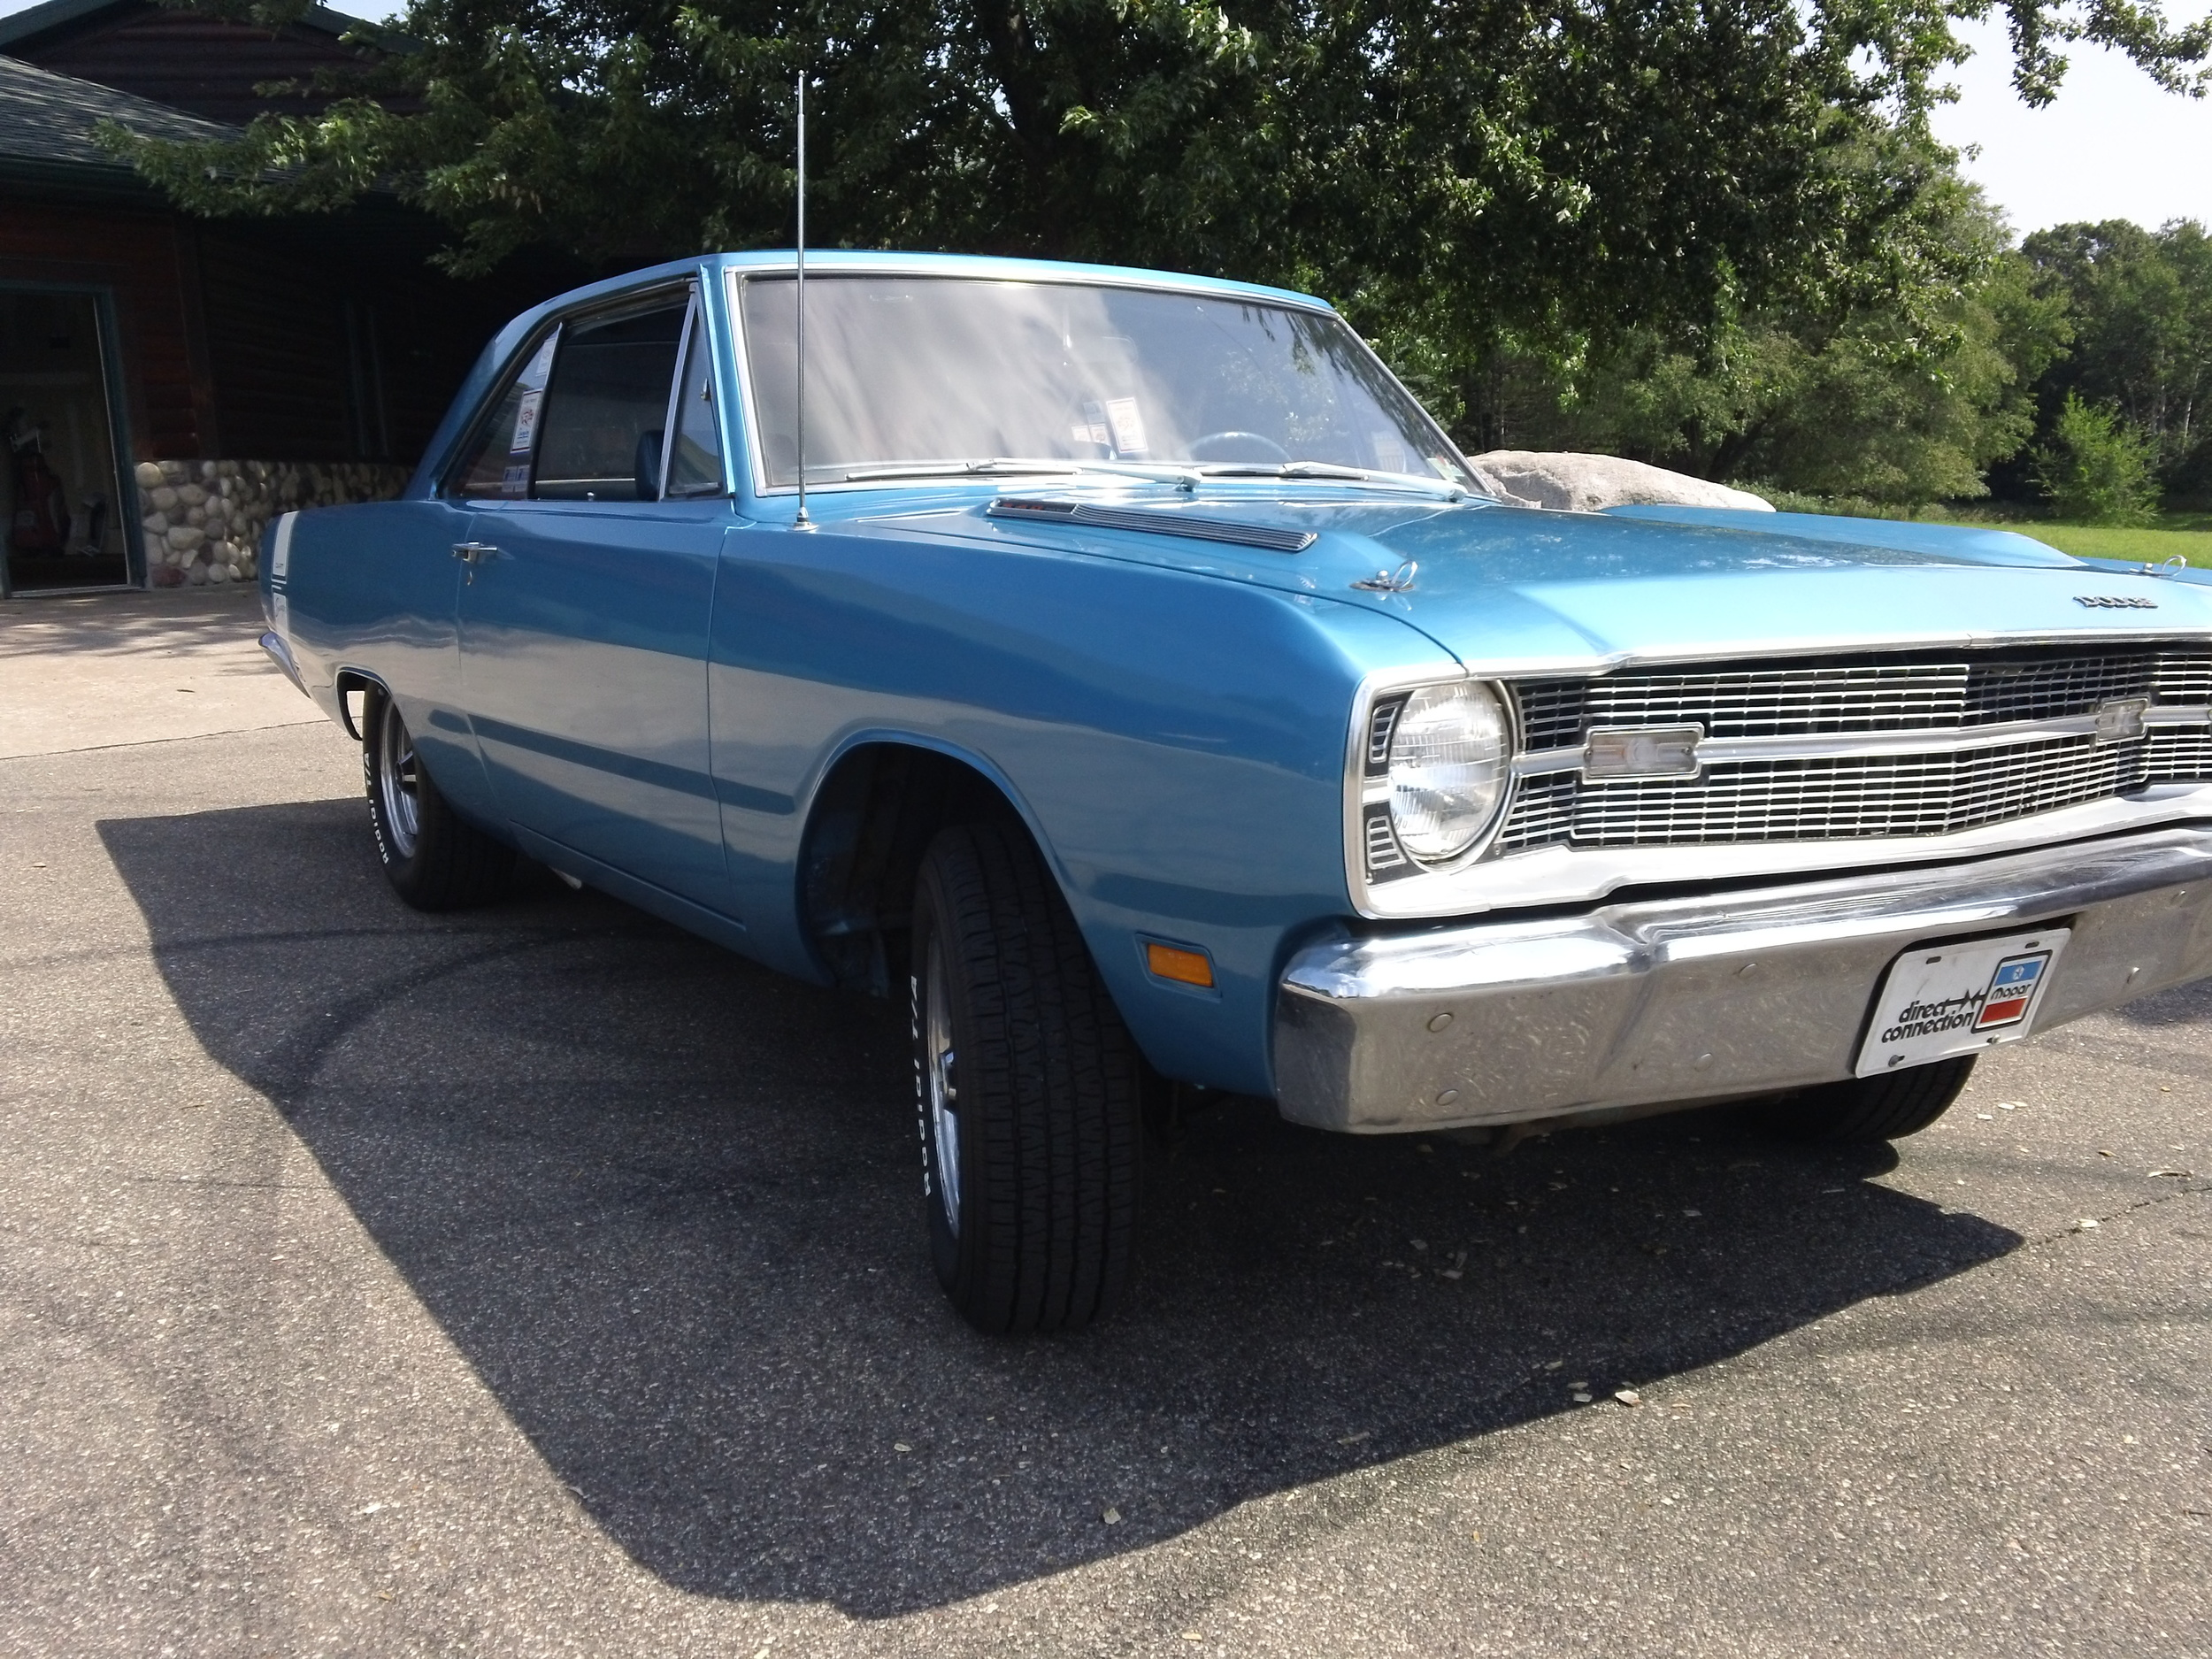 dodge-dart-minneapolis-hot-rod-custom-car-restoration-3.jpg